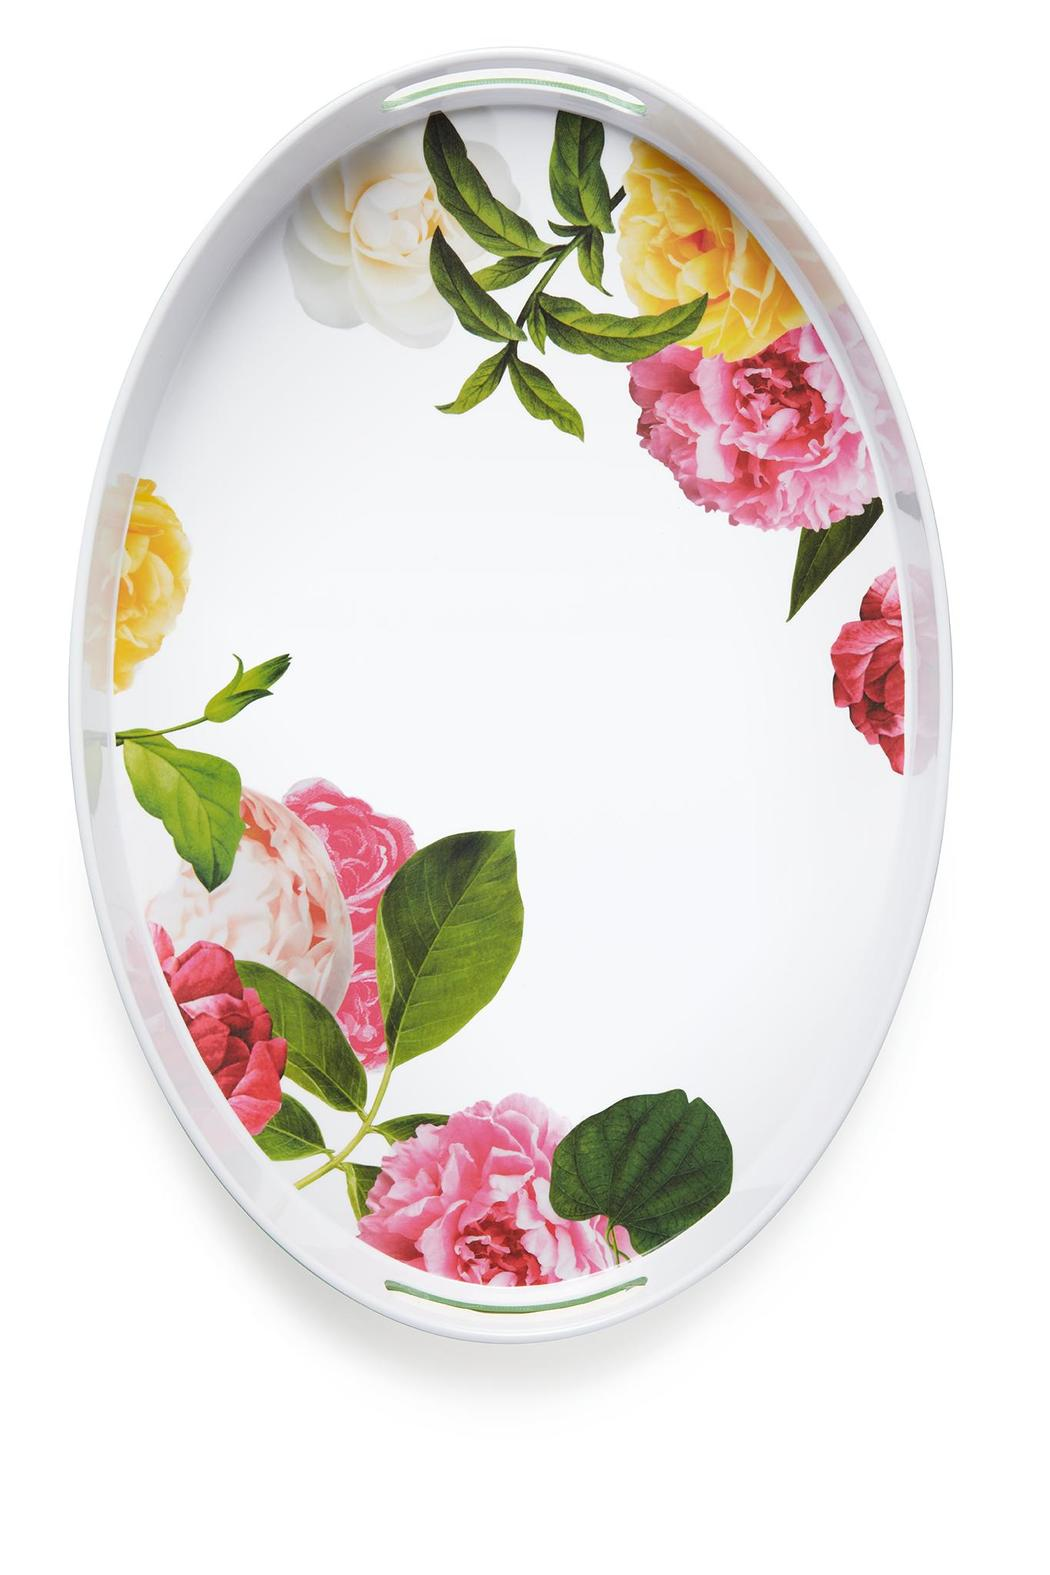 Kate Spade New York Patio Floral Tray - Front Cropped Image  sc 1 st  Shoptiques & Kate Spade New York Patio Floral Tray from Palm Beach by Picnic ...